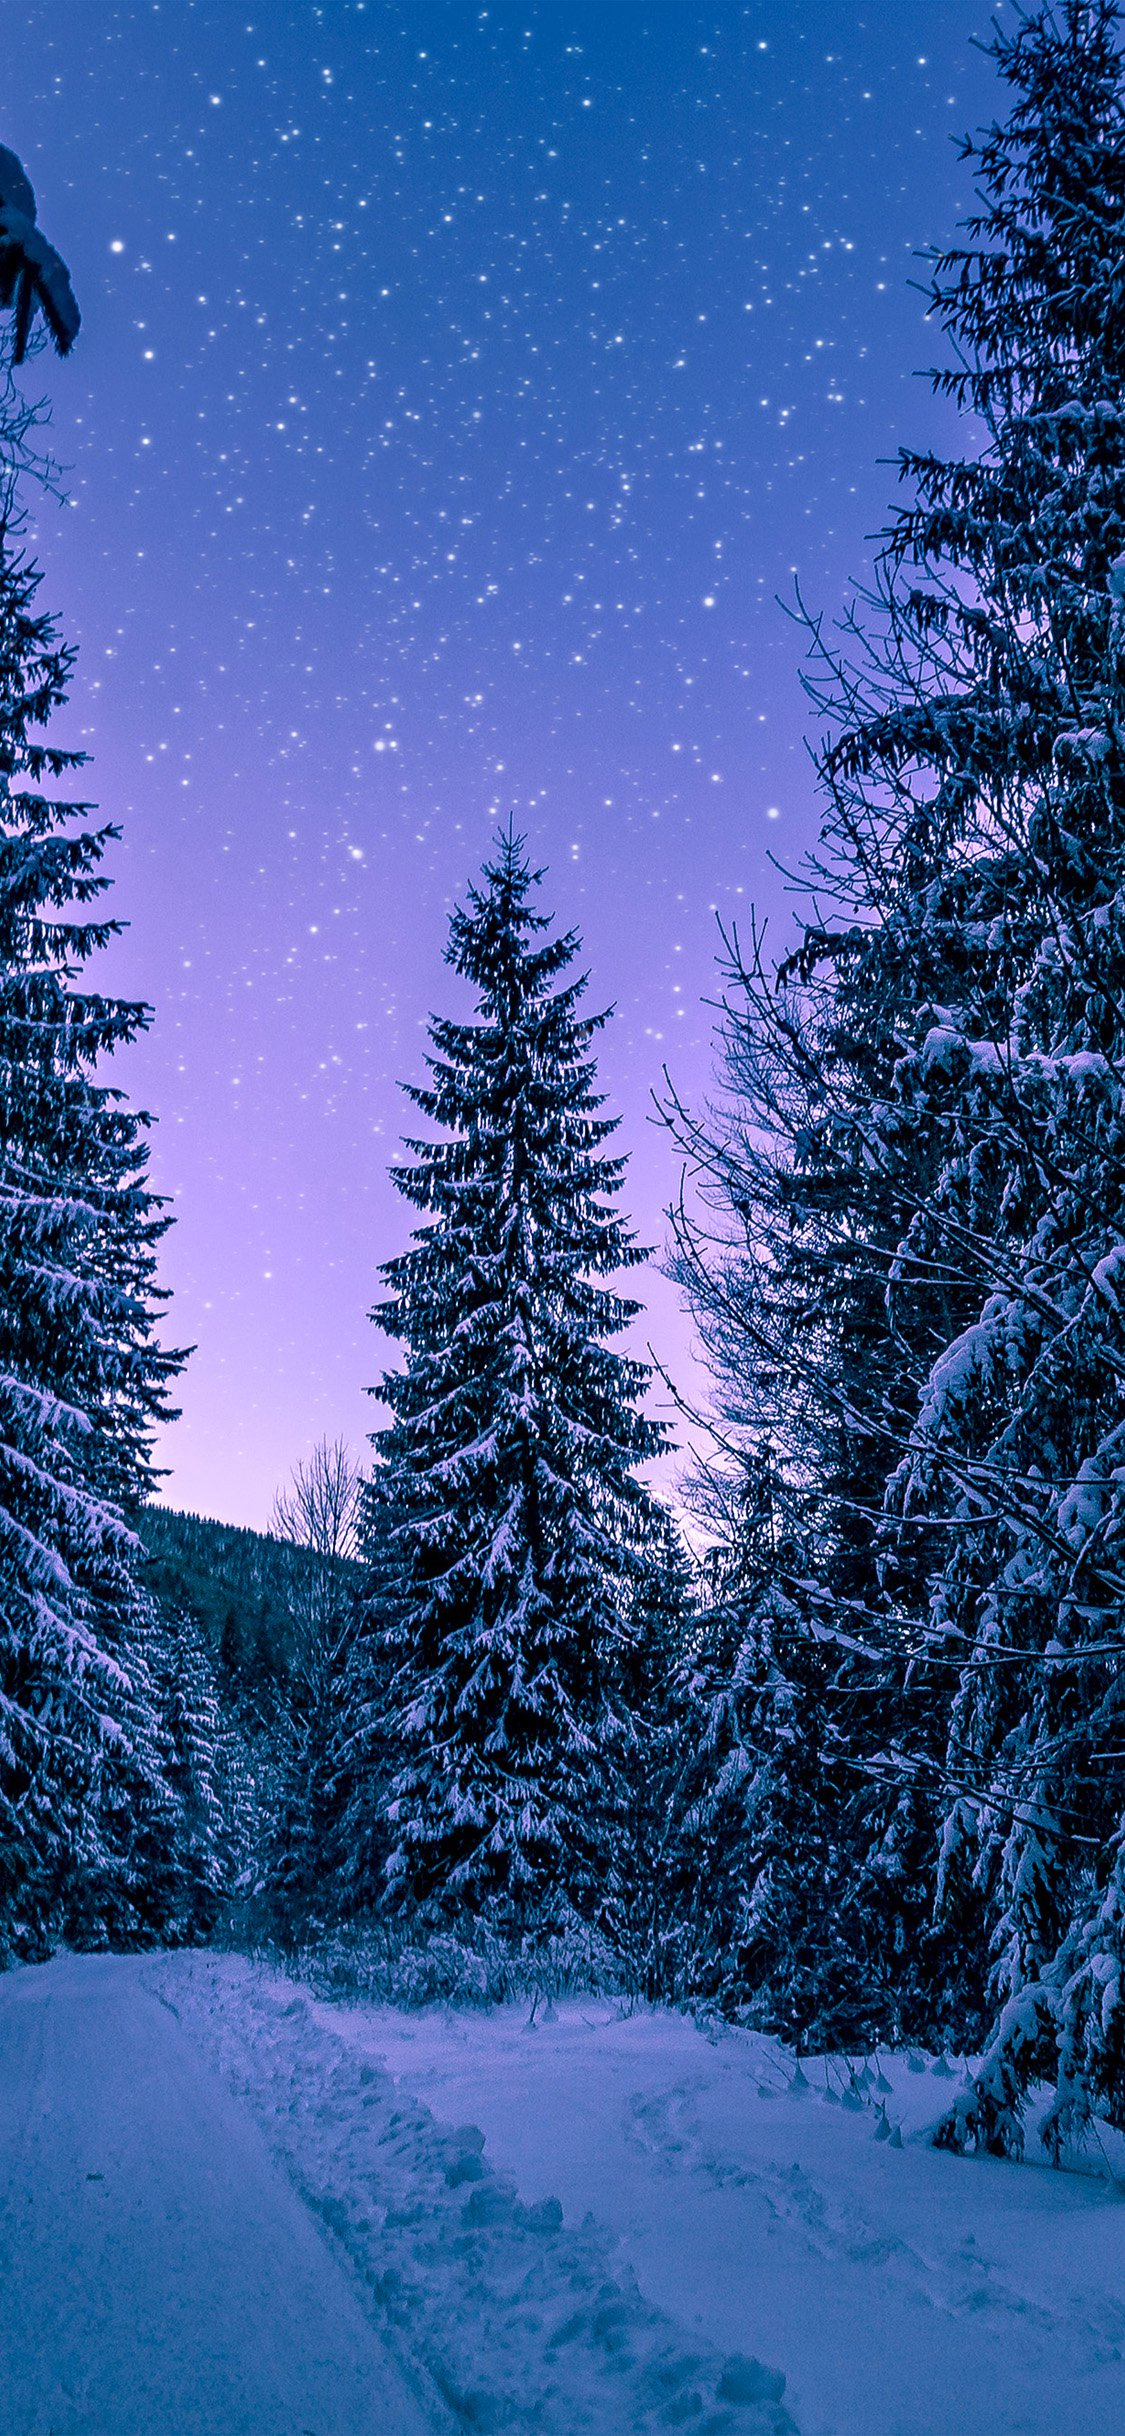 The Best Winter Wallpaper